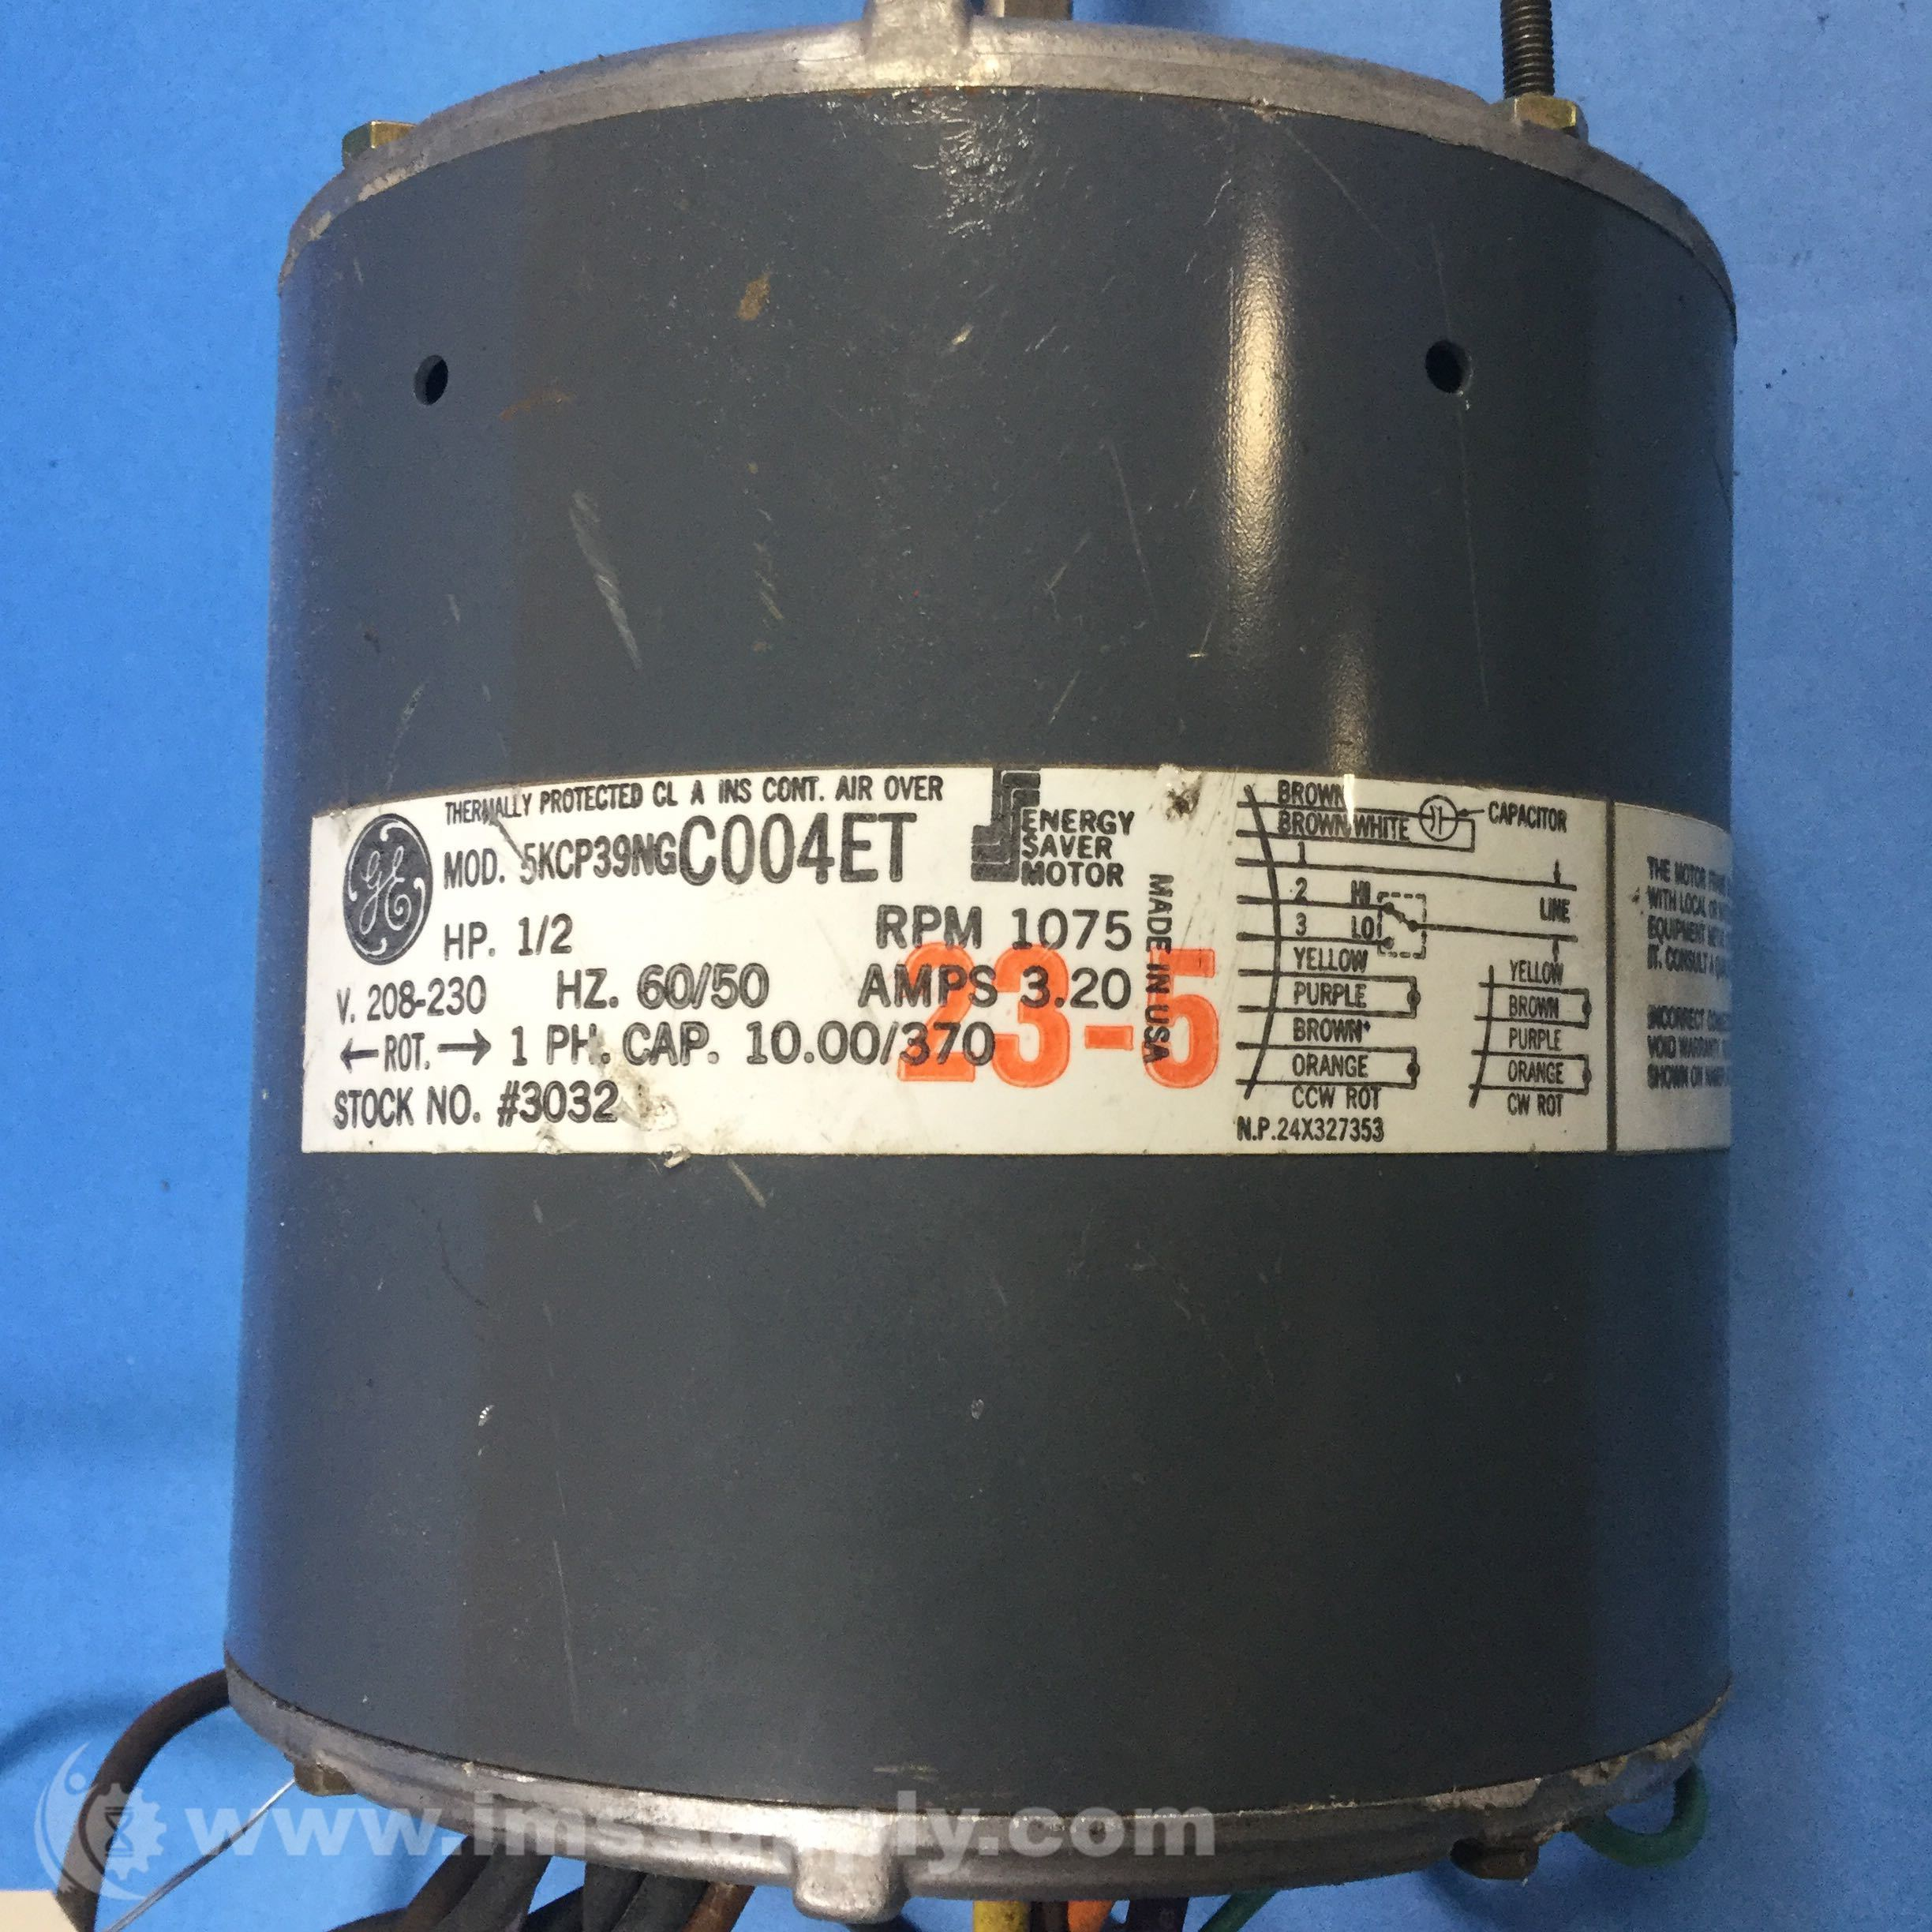 General electric 5kcp39ngc004et 1 2hp 1075rpm 1ph motor for Ge electric motors catalog